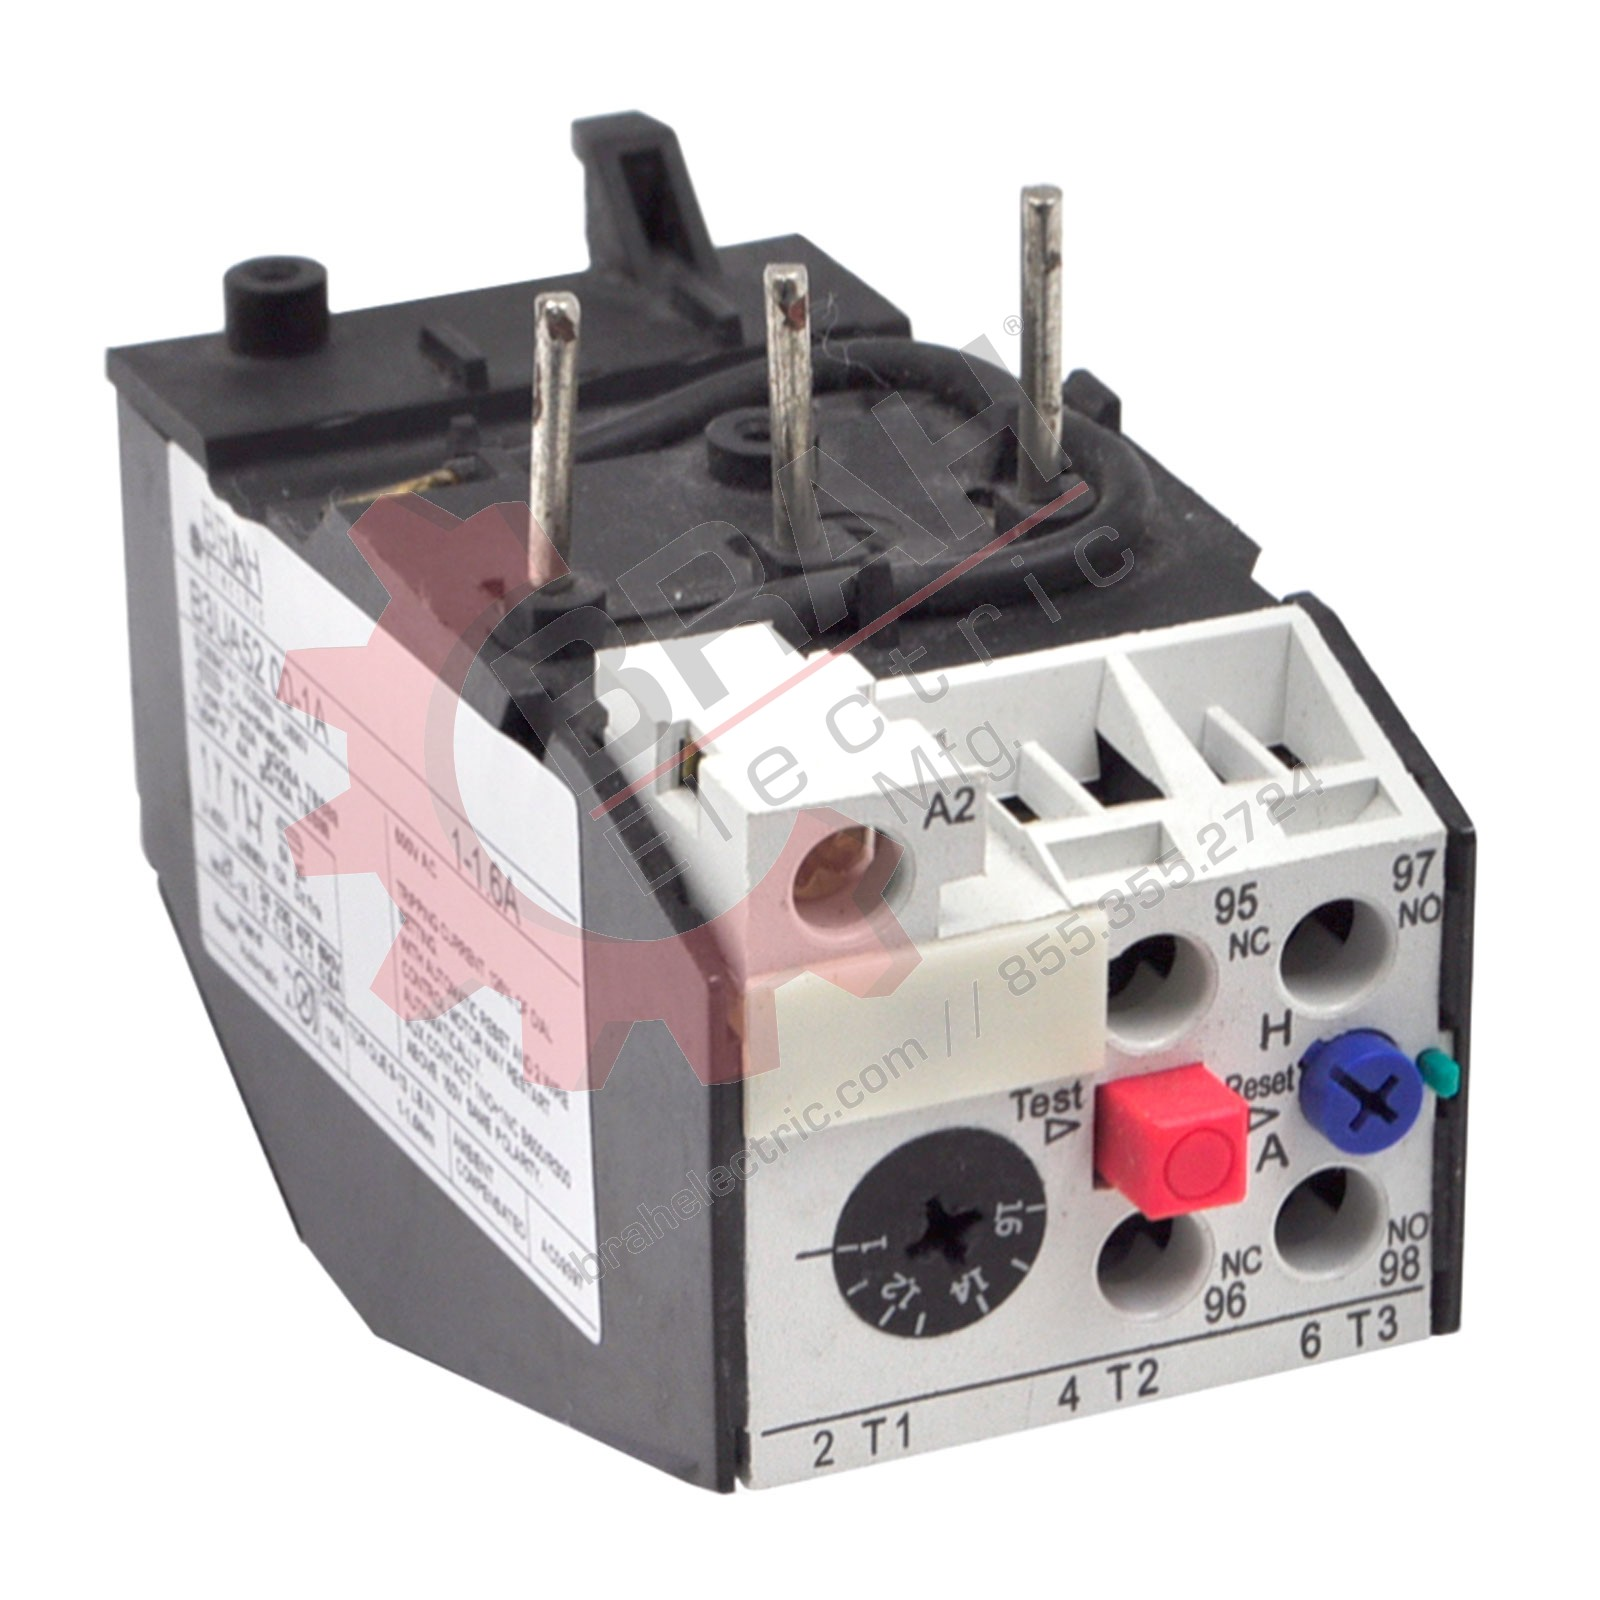 Direct Replacement For Siemens 3UA52-00-2C Overload Relay Direct Replacement With 2 Year Warranty